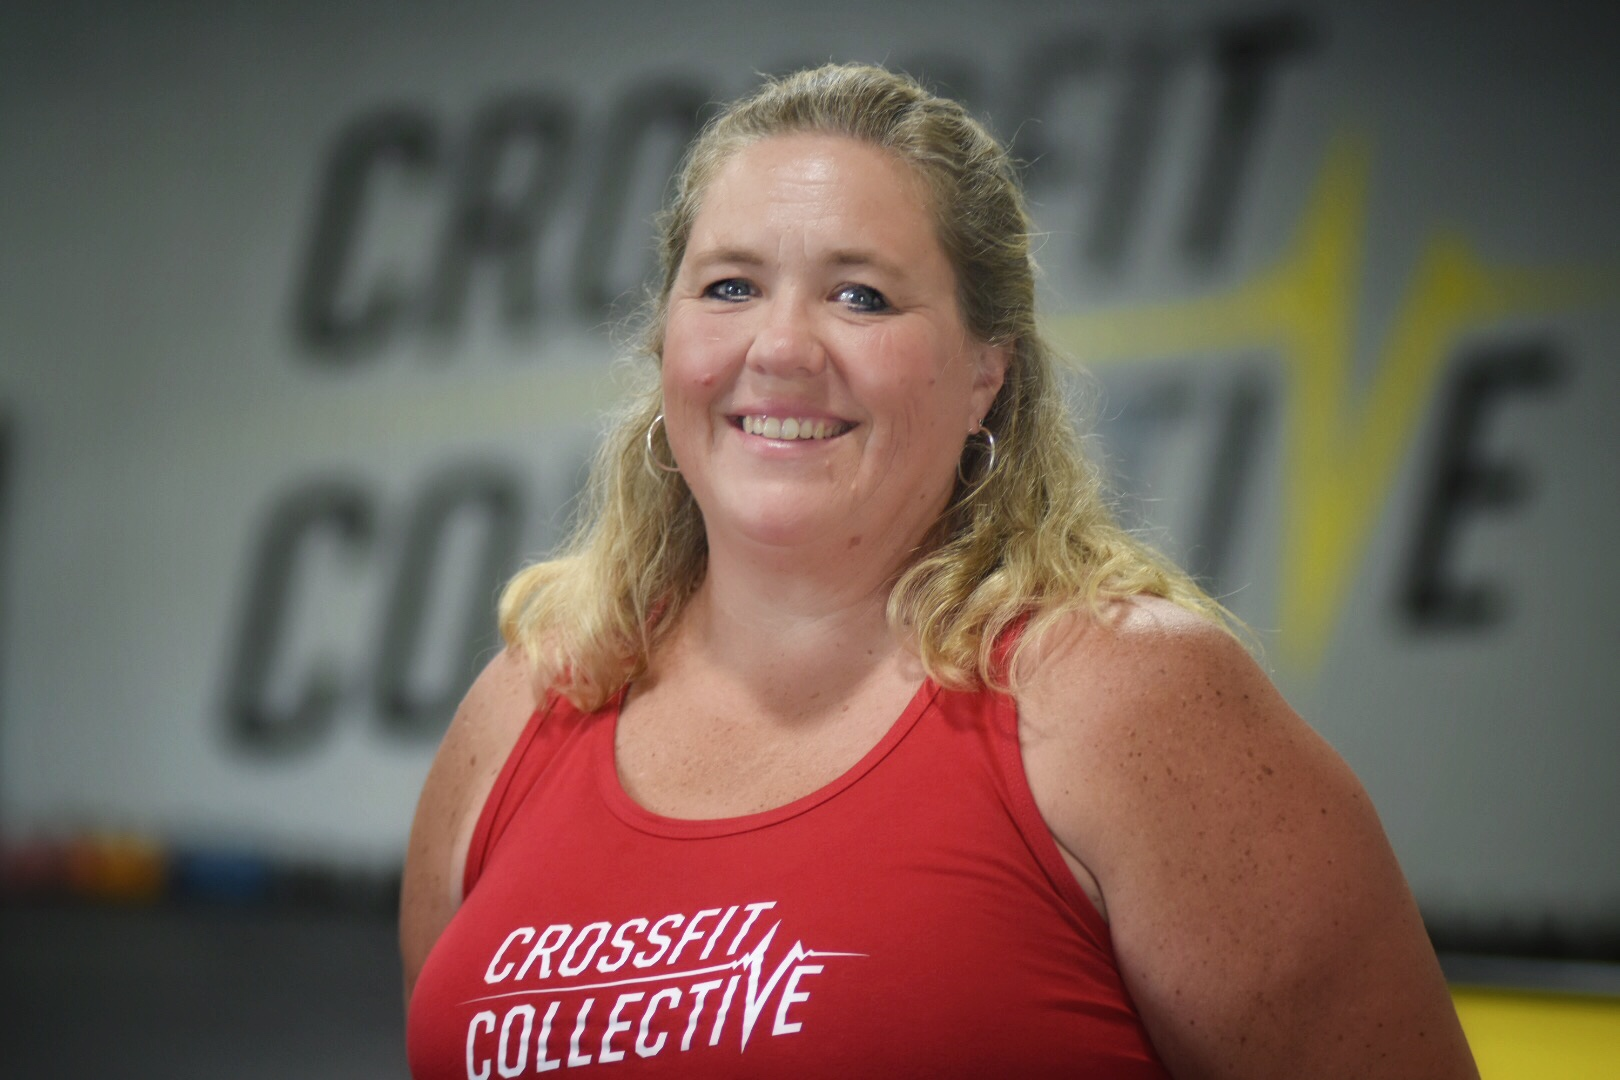 Dawn Davidson - Coach - Born and raised in Lancaster County, Dawn is a J.P. McCaskey High School graduate. She went on to become a Registered Nurse and currently works with older adults to assist with lifestyle management in their home.She started CrossFit at the age of 48; well into the Master's Athlete Category but with a competitive spirit. She attributes the benefits of CrossFit to improving her physical and mental strength. Her excitement for wanting to help others appreciate the benefits of CrossFit was the driving force to become a coach.CrossFit Certifications:-CrossFit Level 1 Trainer-CrossFit Adaptive Athlete-CrossFit Aerobic Capacity